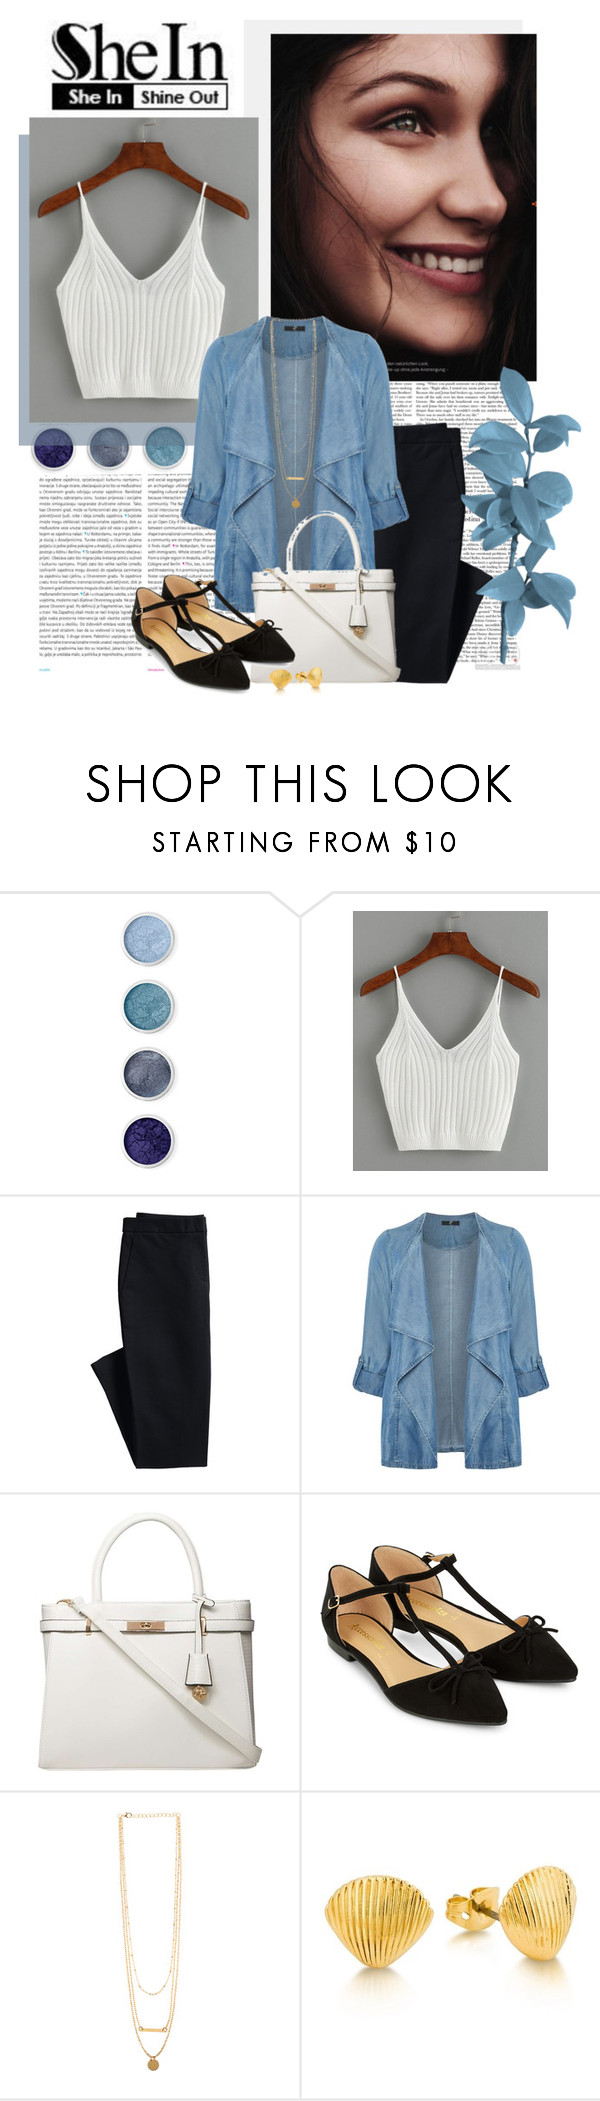 """SheIn Ribbed Knit Crop Cami Top"" by kimi ❤ liked on Polyvore featuring Oris, Terre Mère, Canvas by Lands' End, Evans, Dorothy Perkins and Accessorize"